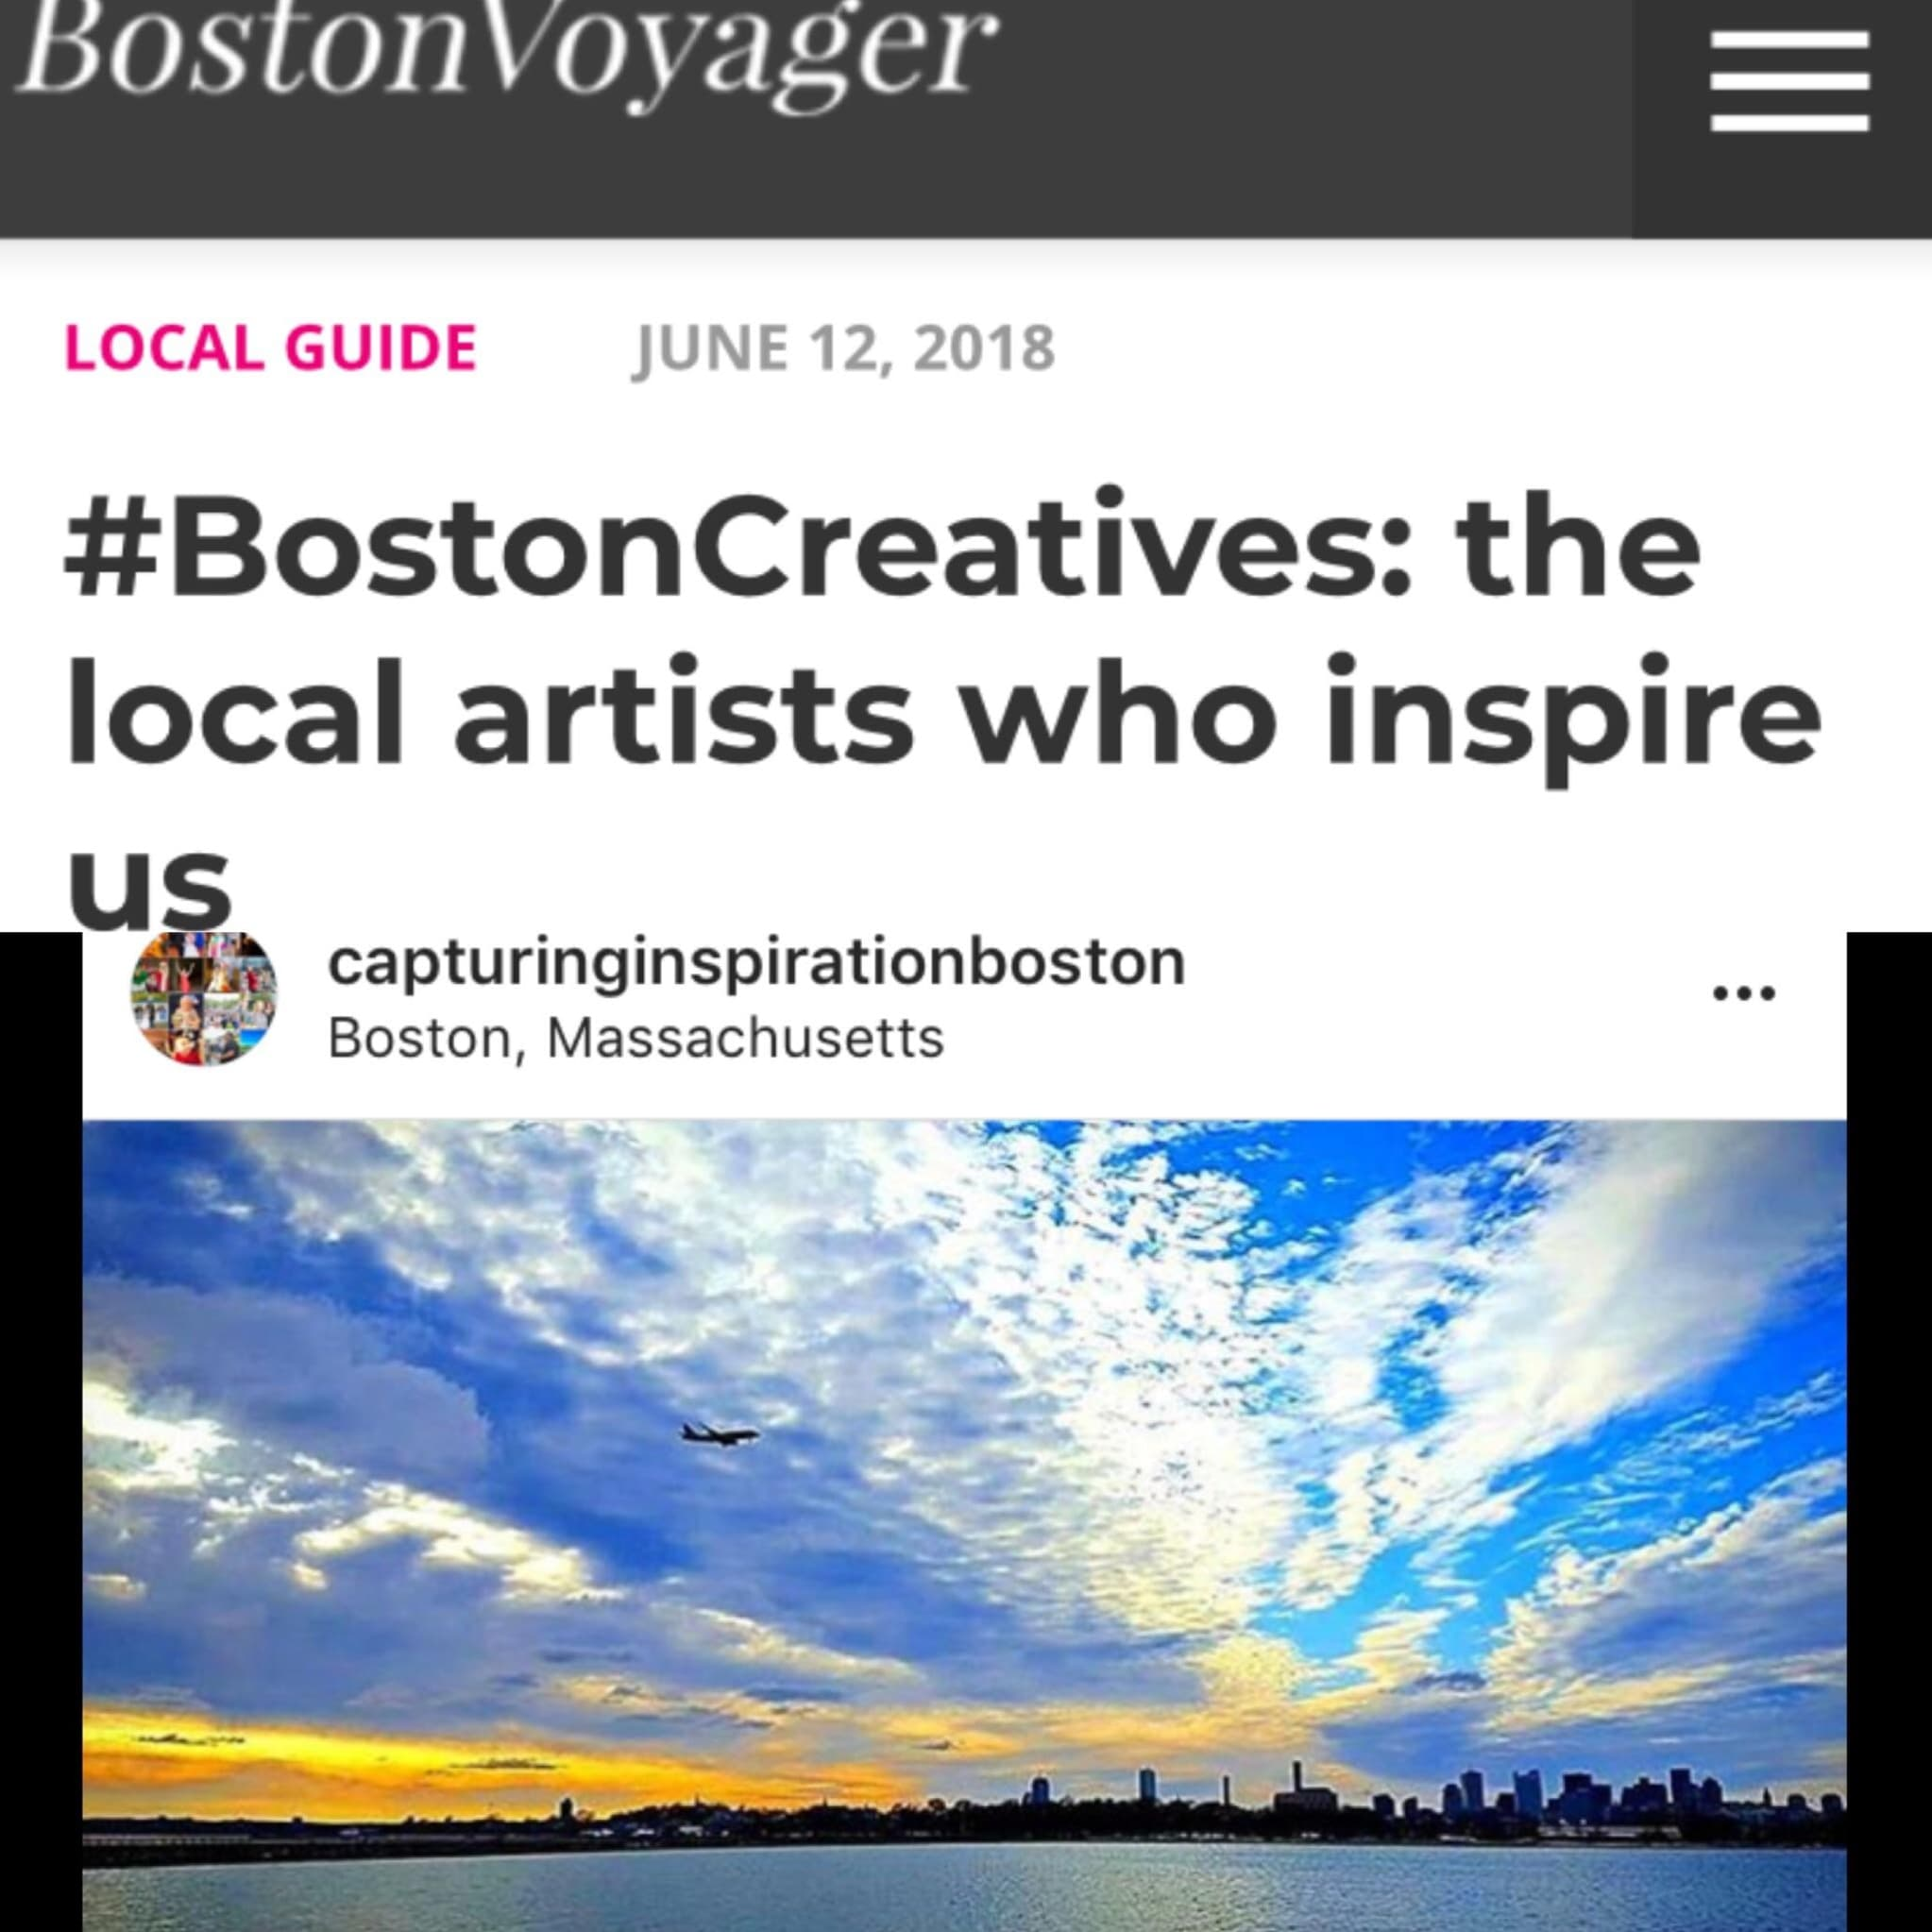 Local Artists who inspire us - The Boston Voyager Magazine published Moss Lynch, Proprietor of Capturing Inspiration, in their June 2018 issue as one of their,